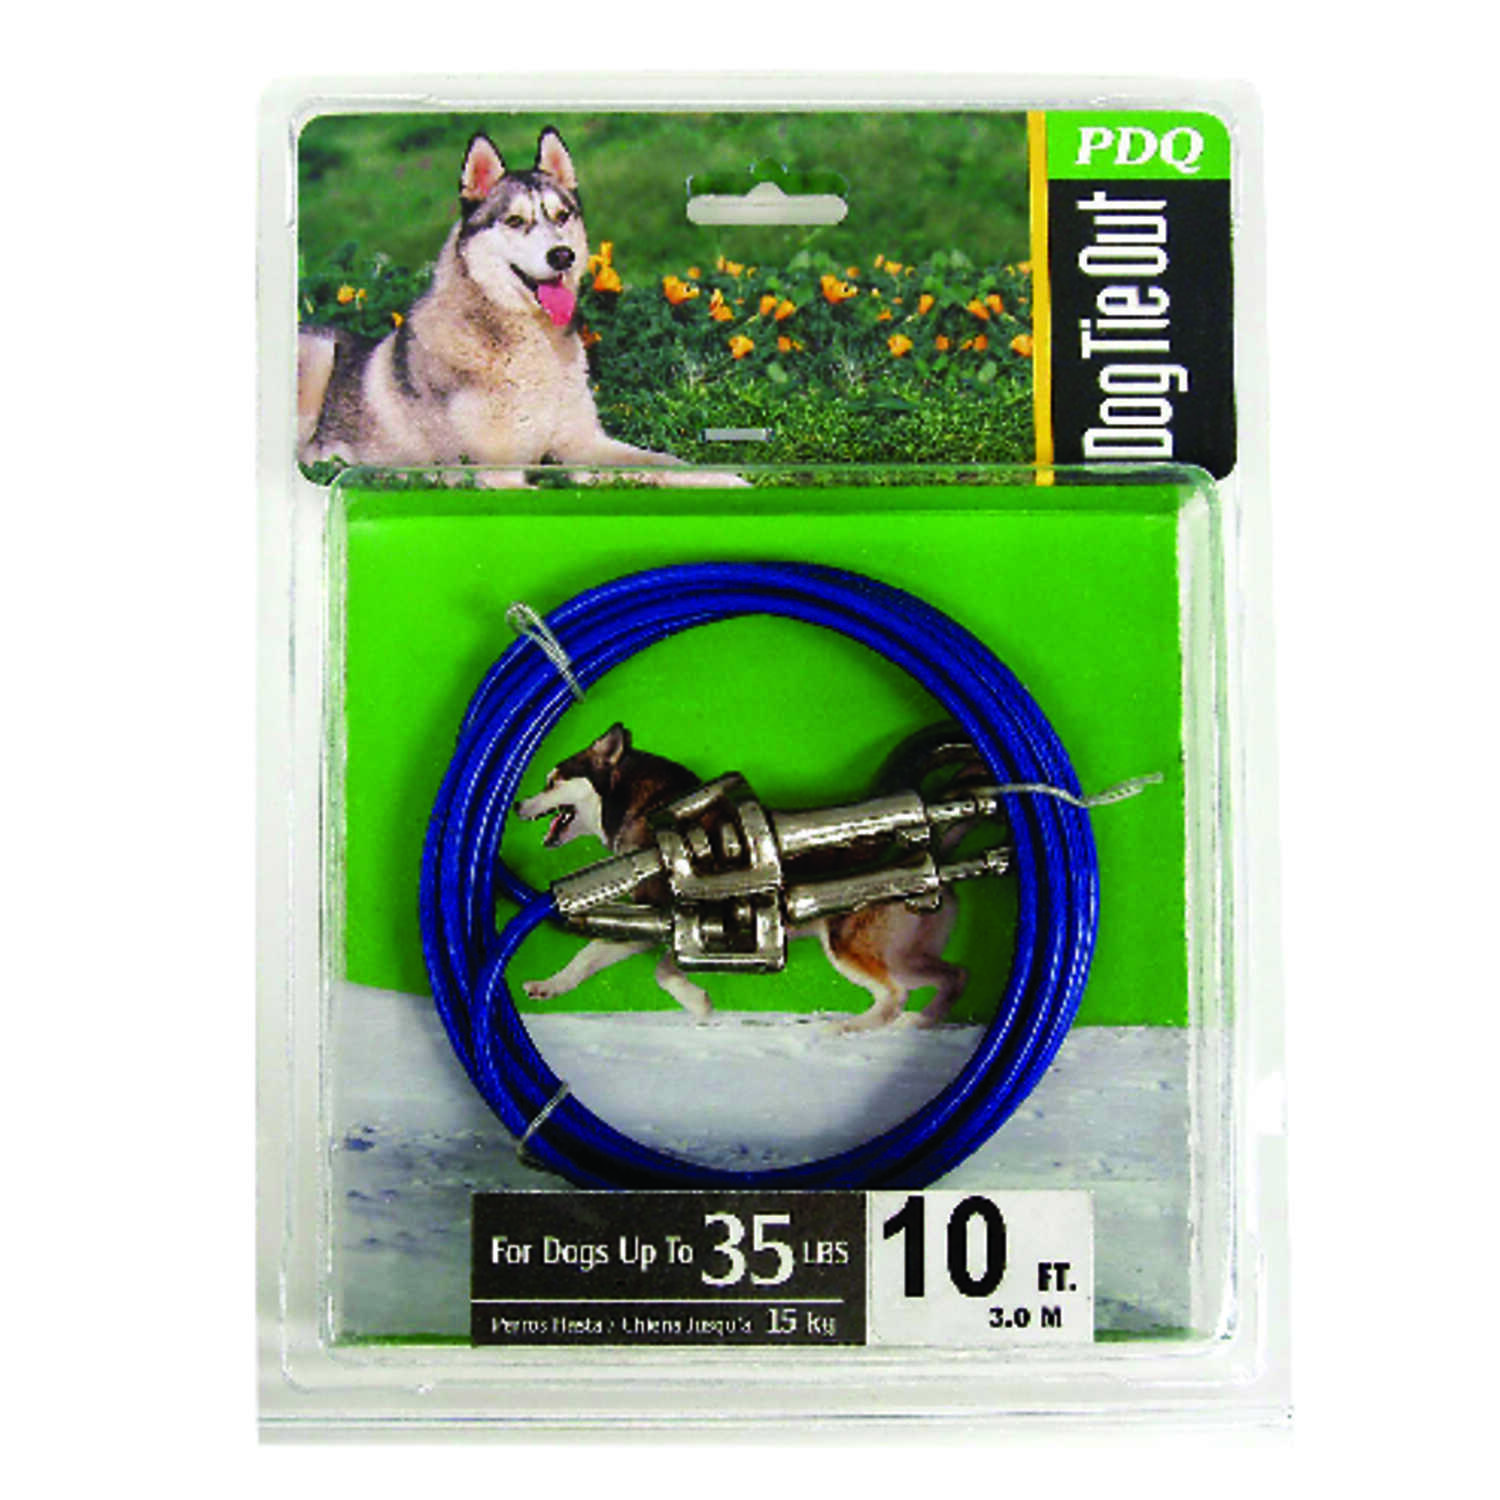 Boss Pet  PDQ  Blue / Silver  Tie-Out  Vinyl Coated Cable  Dog  Tie Out  Medium